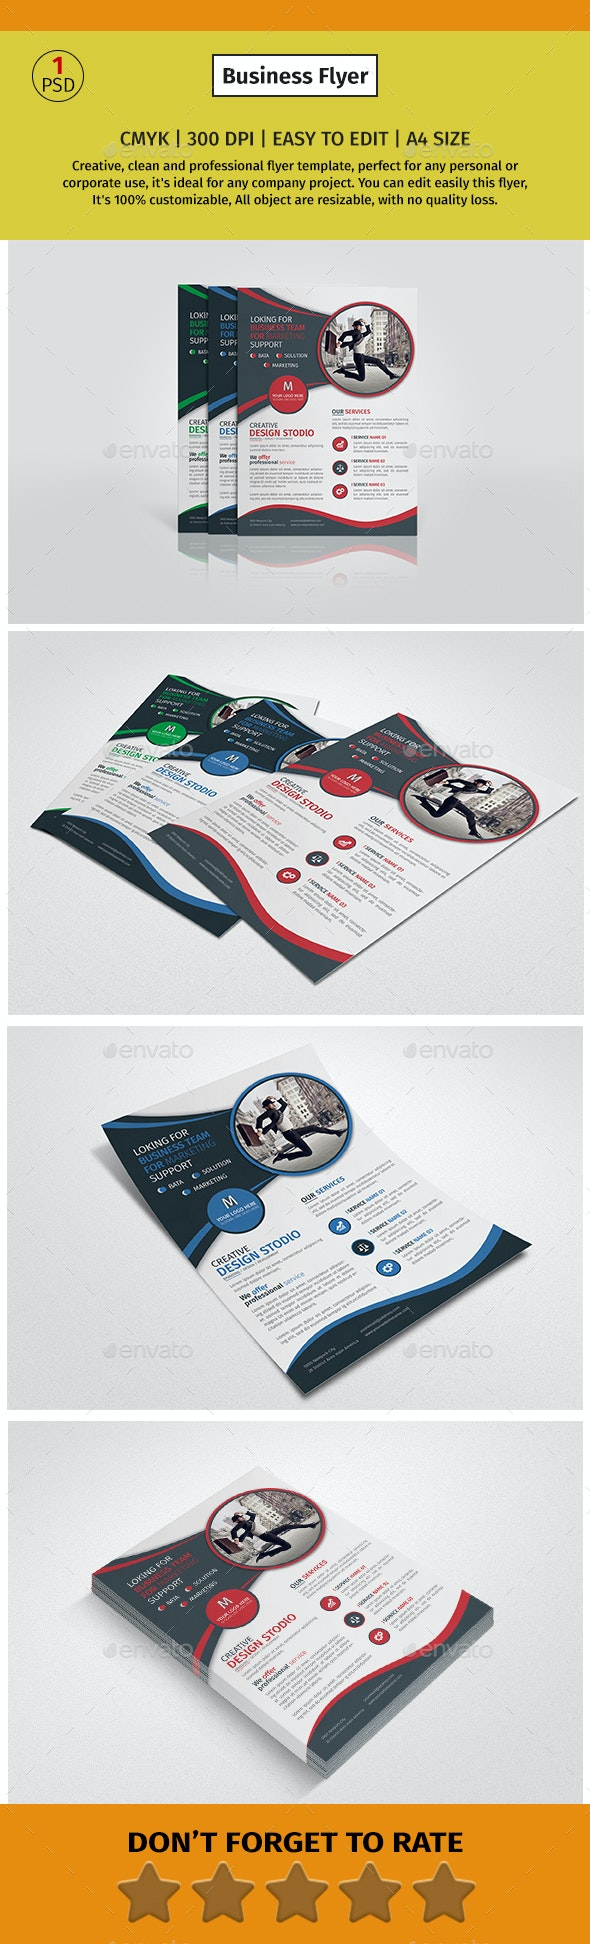 A4 Corporate Business Flyer #1 - Corporate Flyers